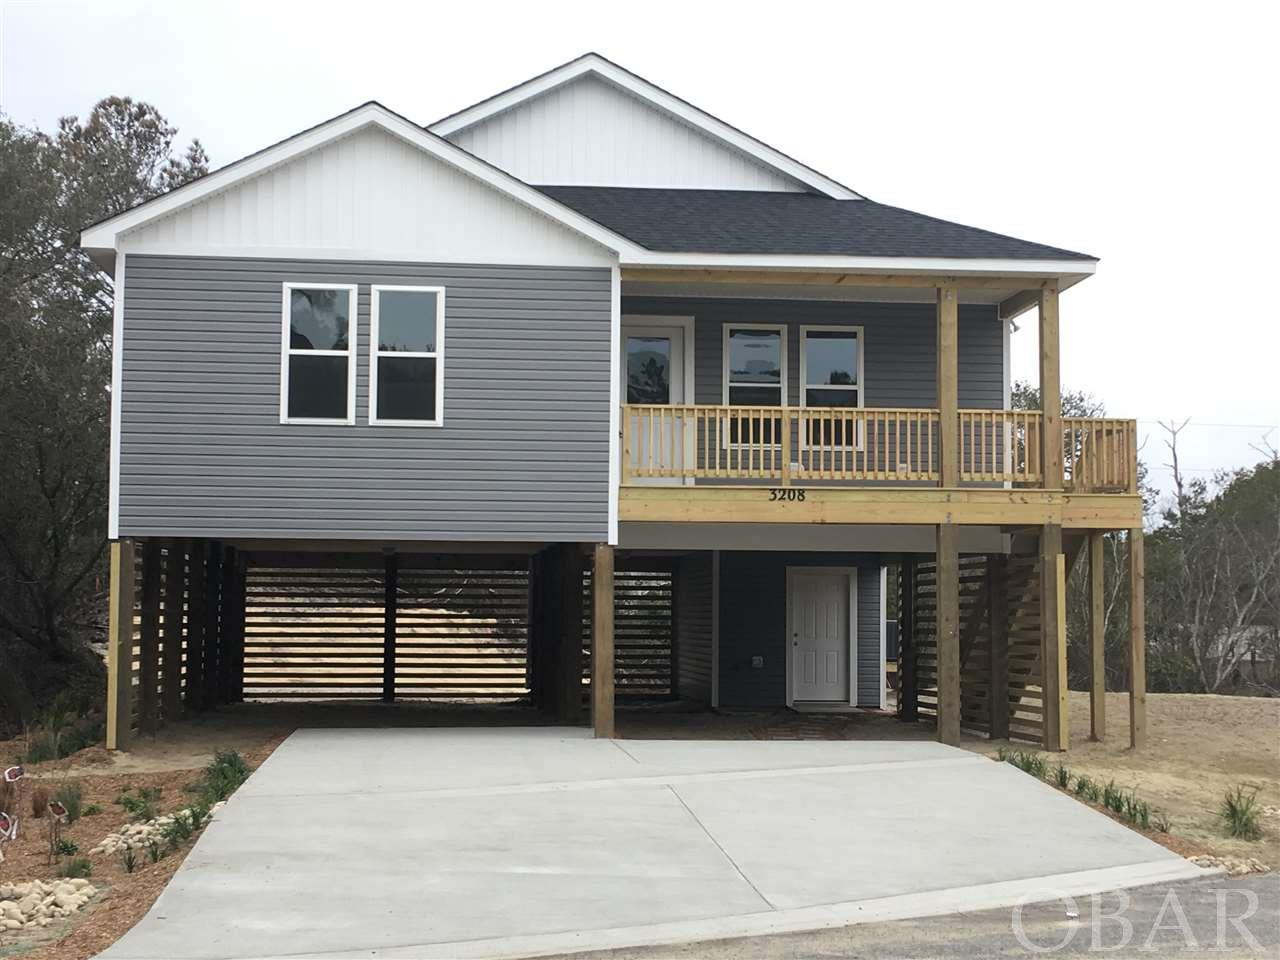 3208 Salada Lane, Nags Head, NC 27959, 3 Bedrooms Bedrooms, ,2 BathroomsBathrooms,Residential,For sale,Salada Lane,101636